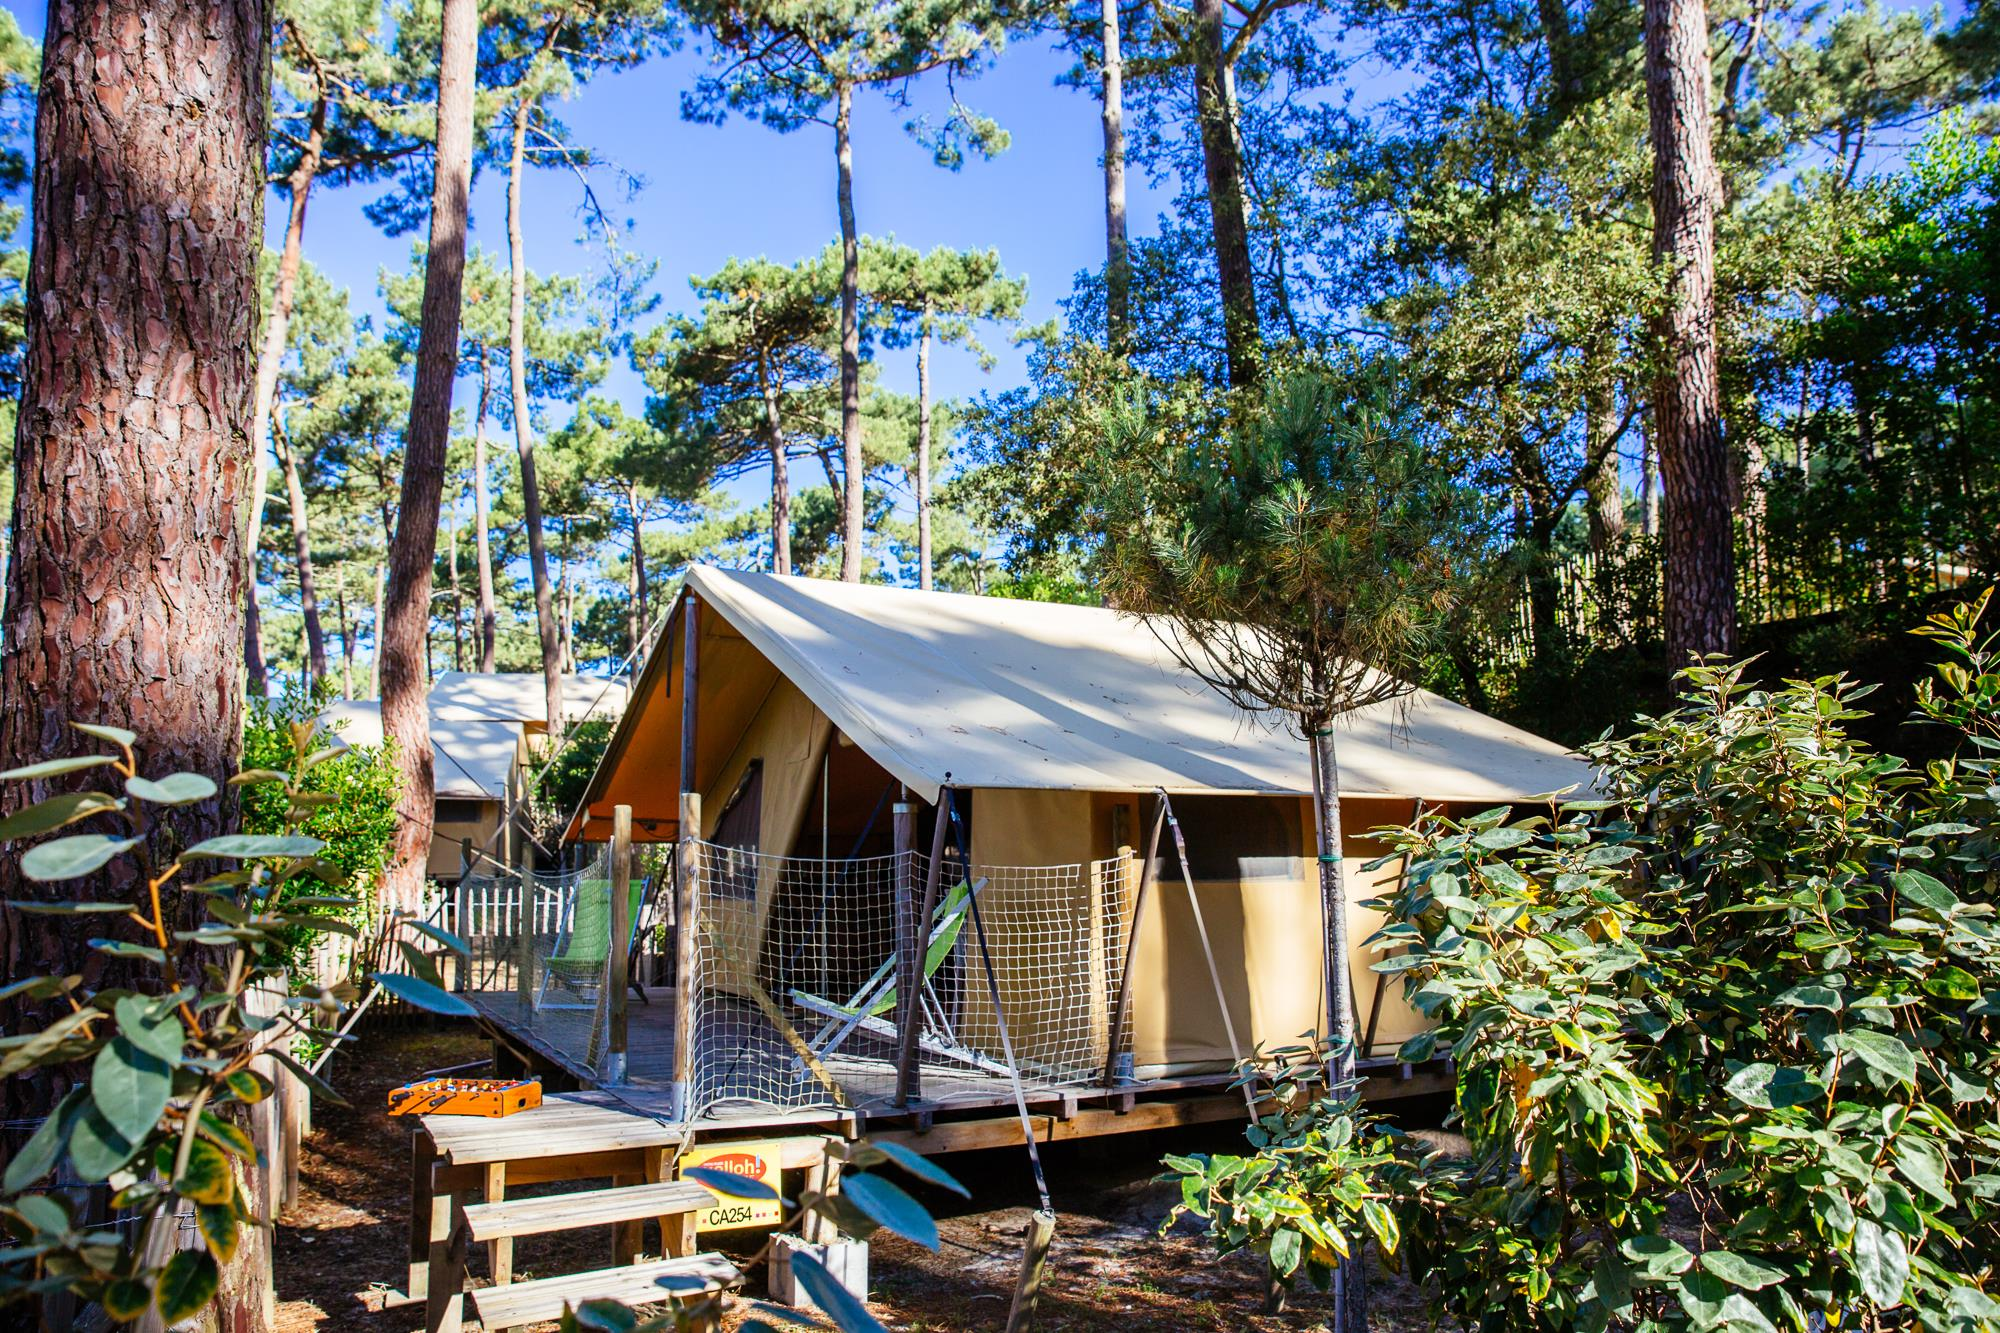 Accommodation - Tent Lodge *** (2 Bedrooms) - YELLOH! VILLAGE - LES GRANDS PINS